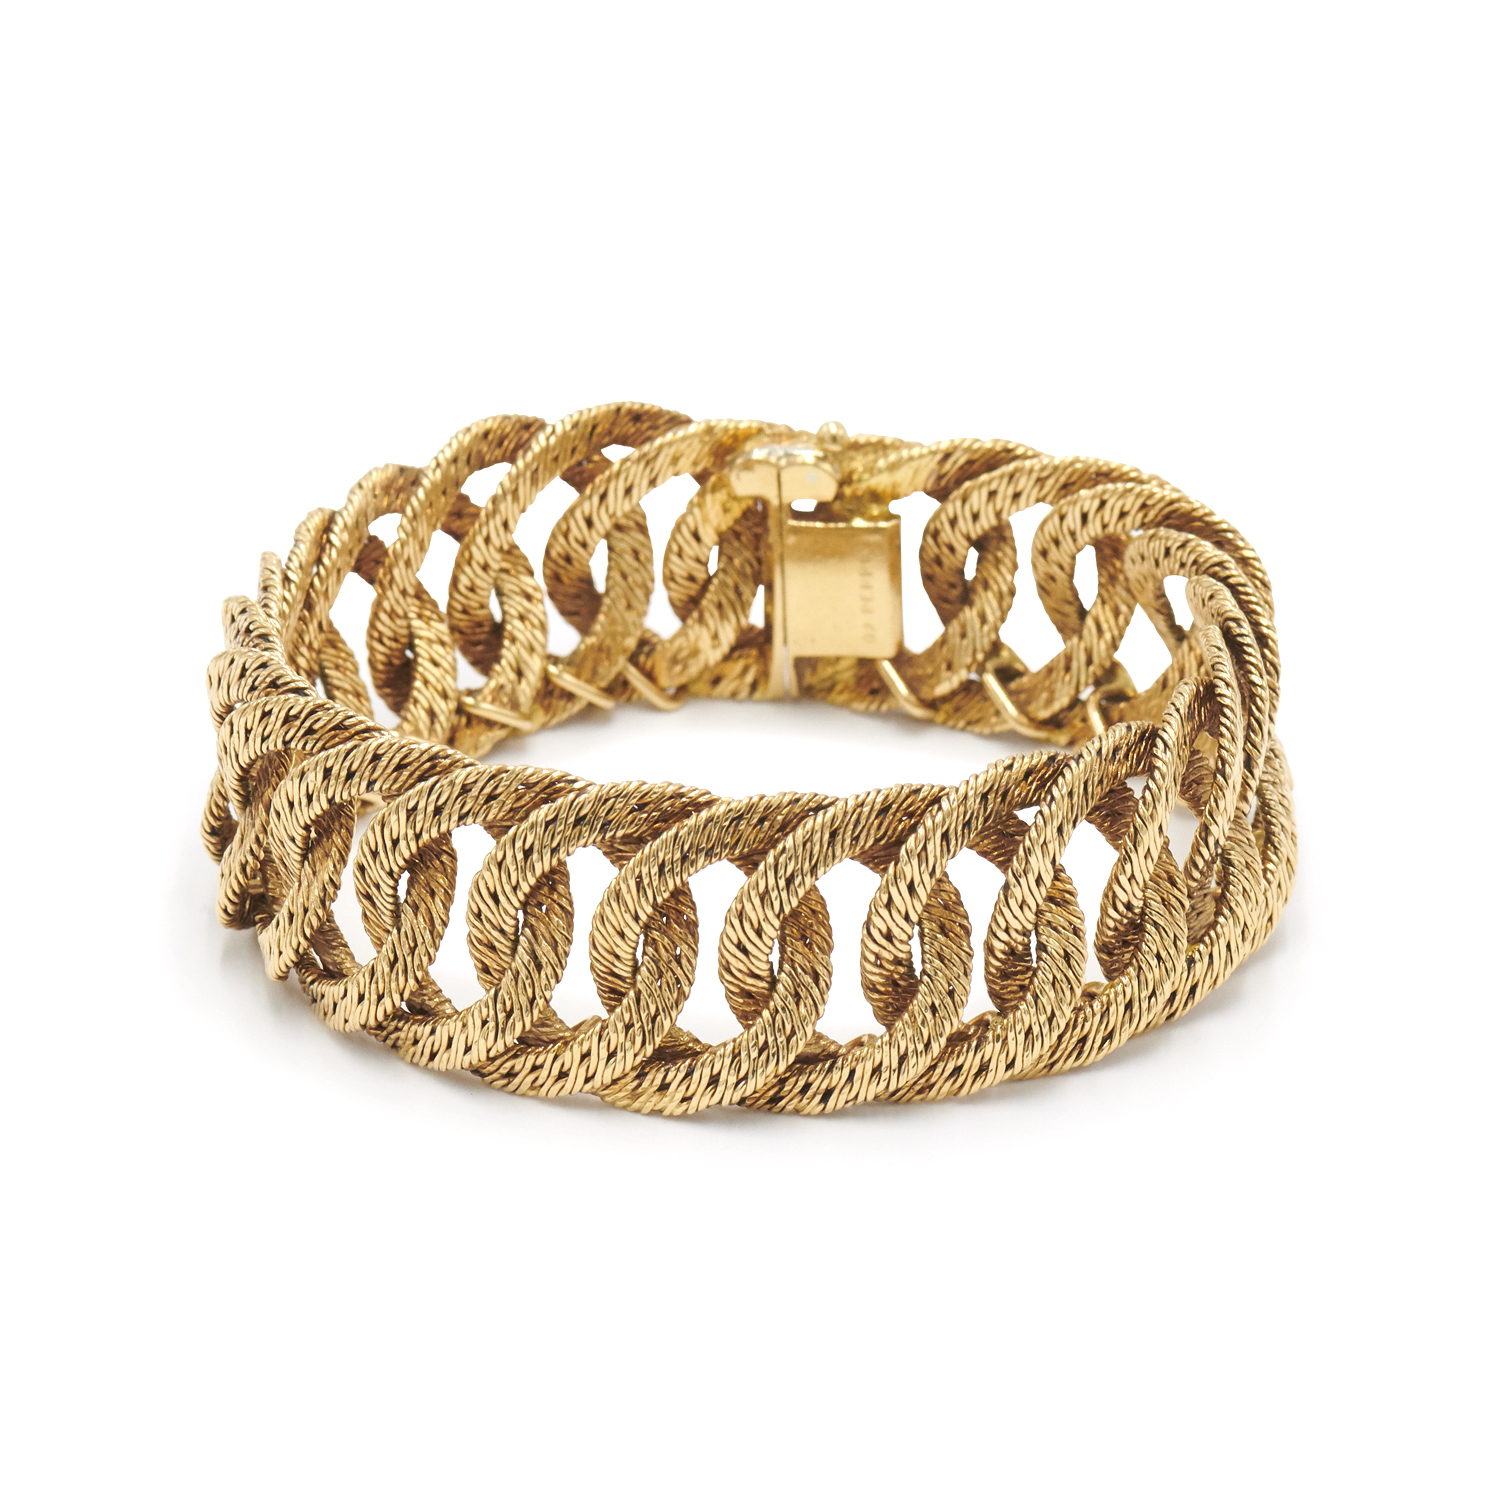 18K Yellow Gold Textured Curb Link Bracelet by Georges L`Enfant for OJ Perrin, Serial FL40012